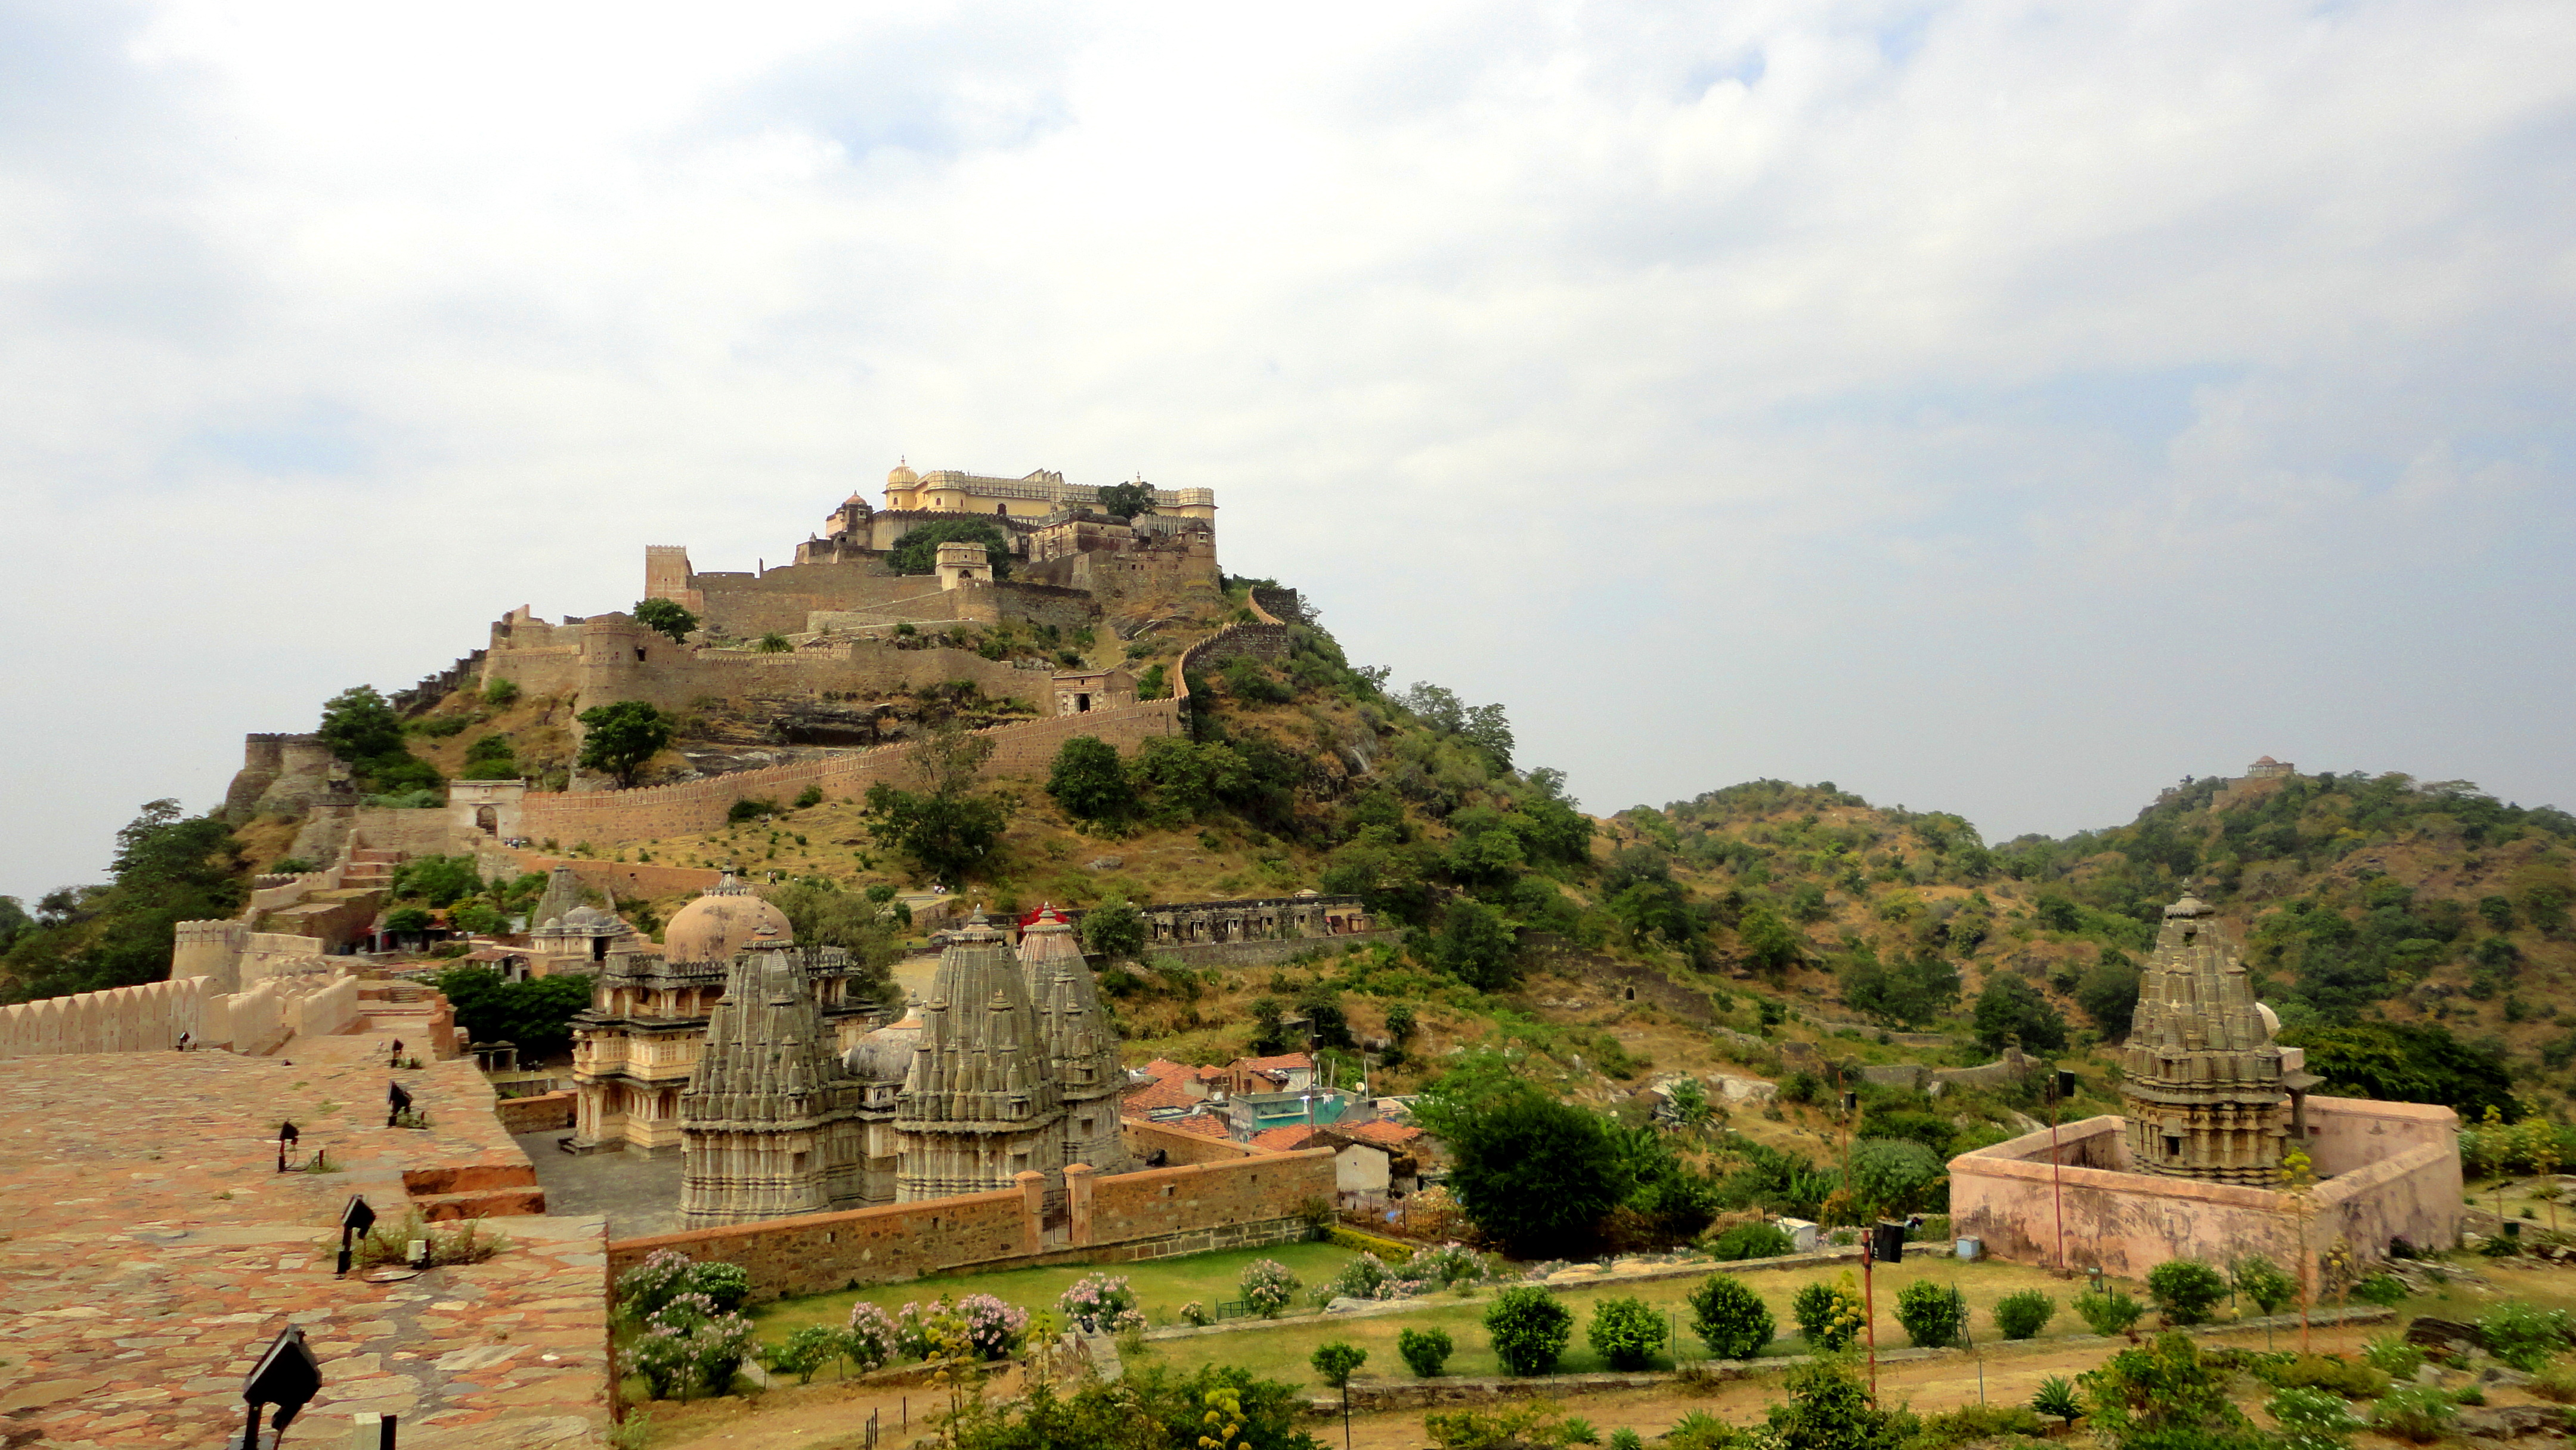 List of Forts in Rajasthan